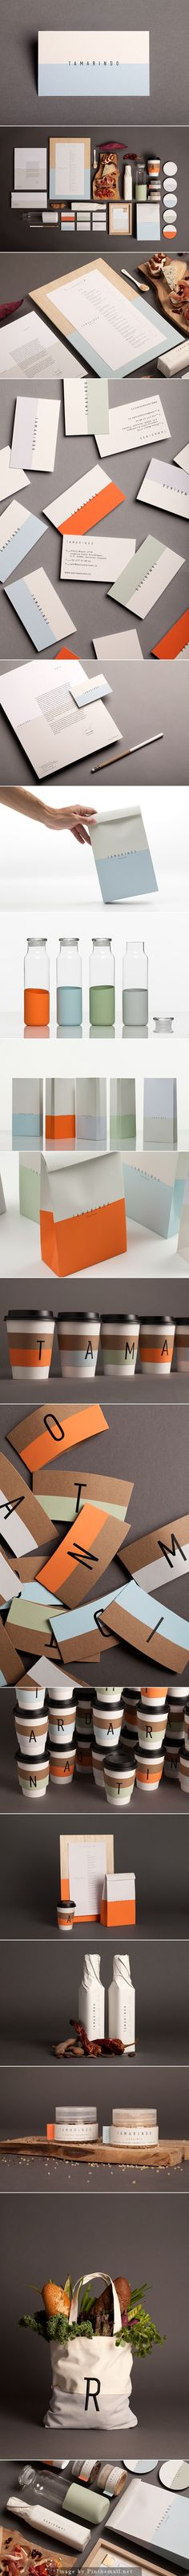 Tasty Tamarindo identity, packaging, branding curated by Packaging Diva PD…